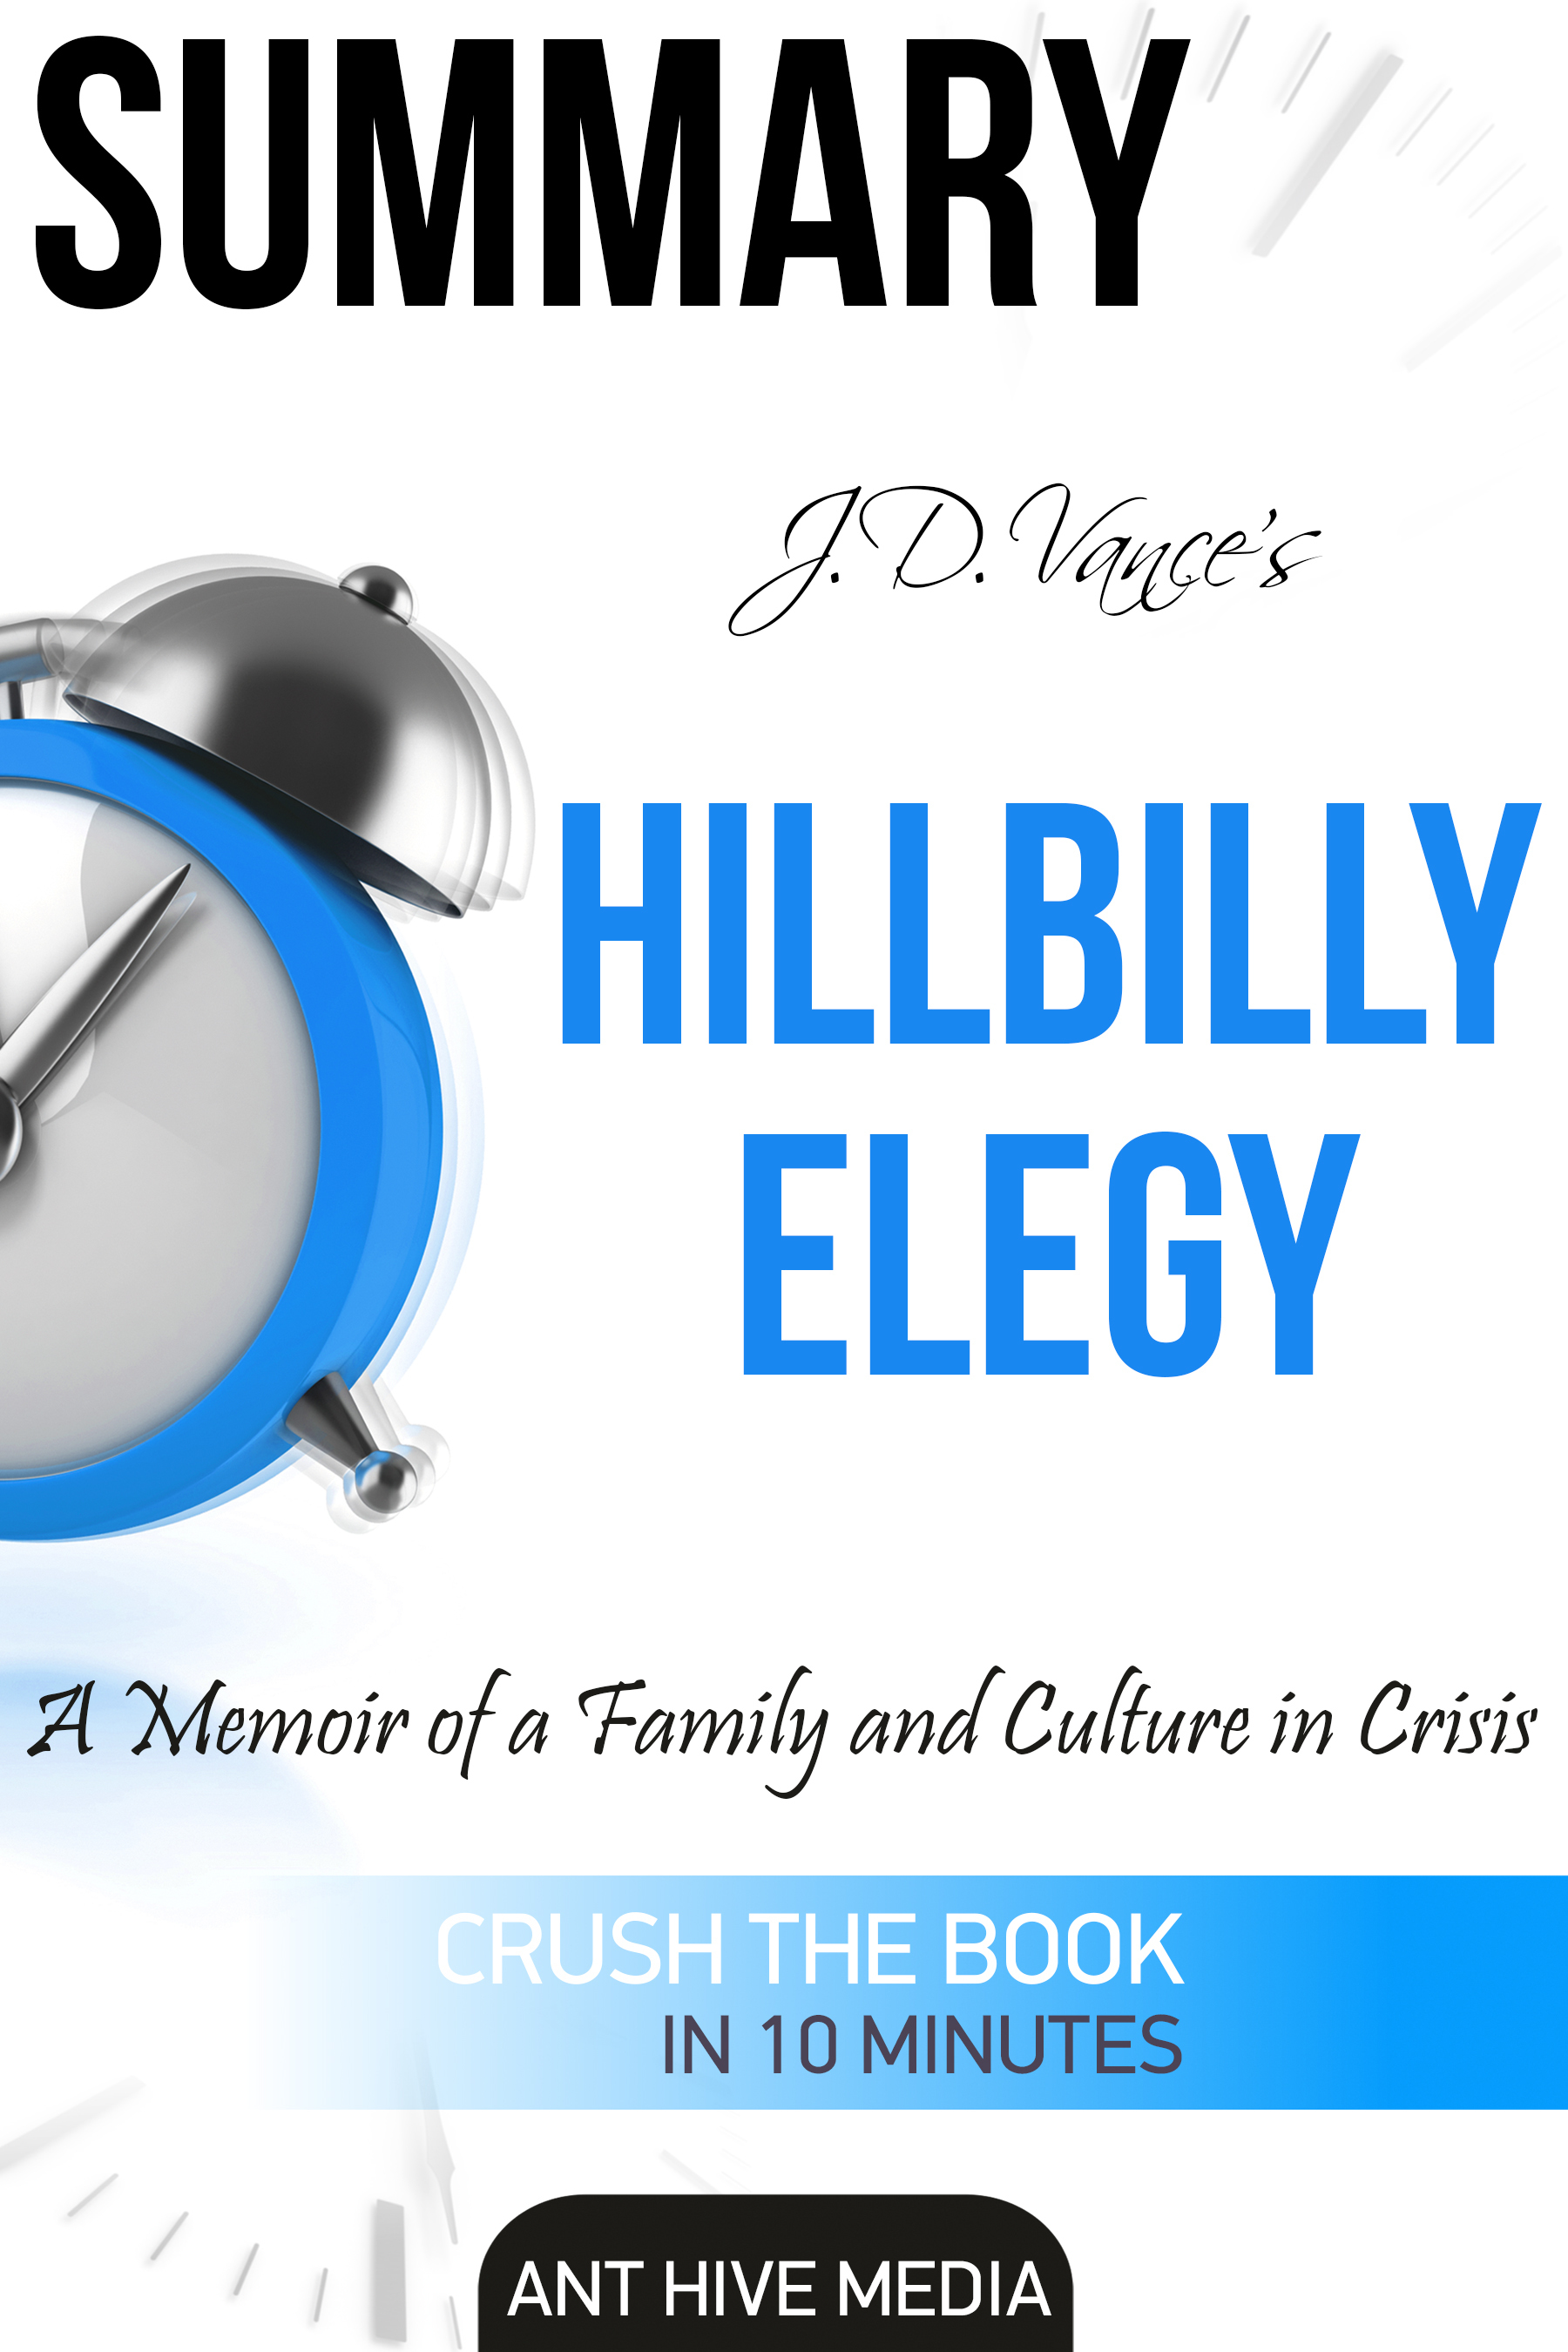 J.D. Vance's Hillbilly Elegy A Memoir of a Family and Culture In Crisis | Summary